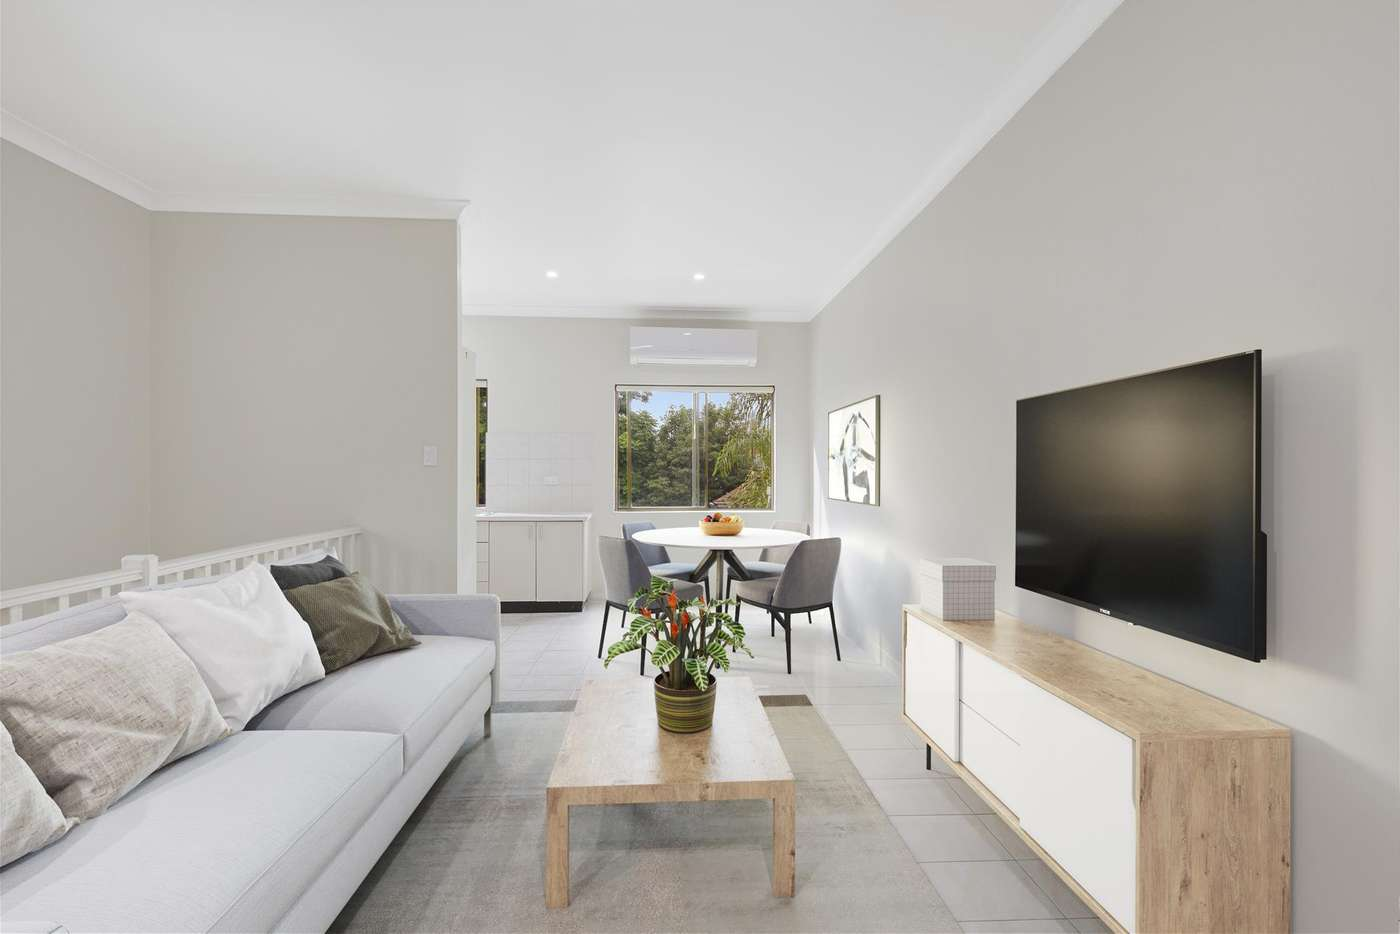 Main view of Homely apartment listing, 1/2 West Botany Street, Arncliffe NSW 2205